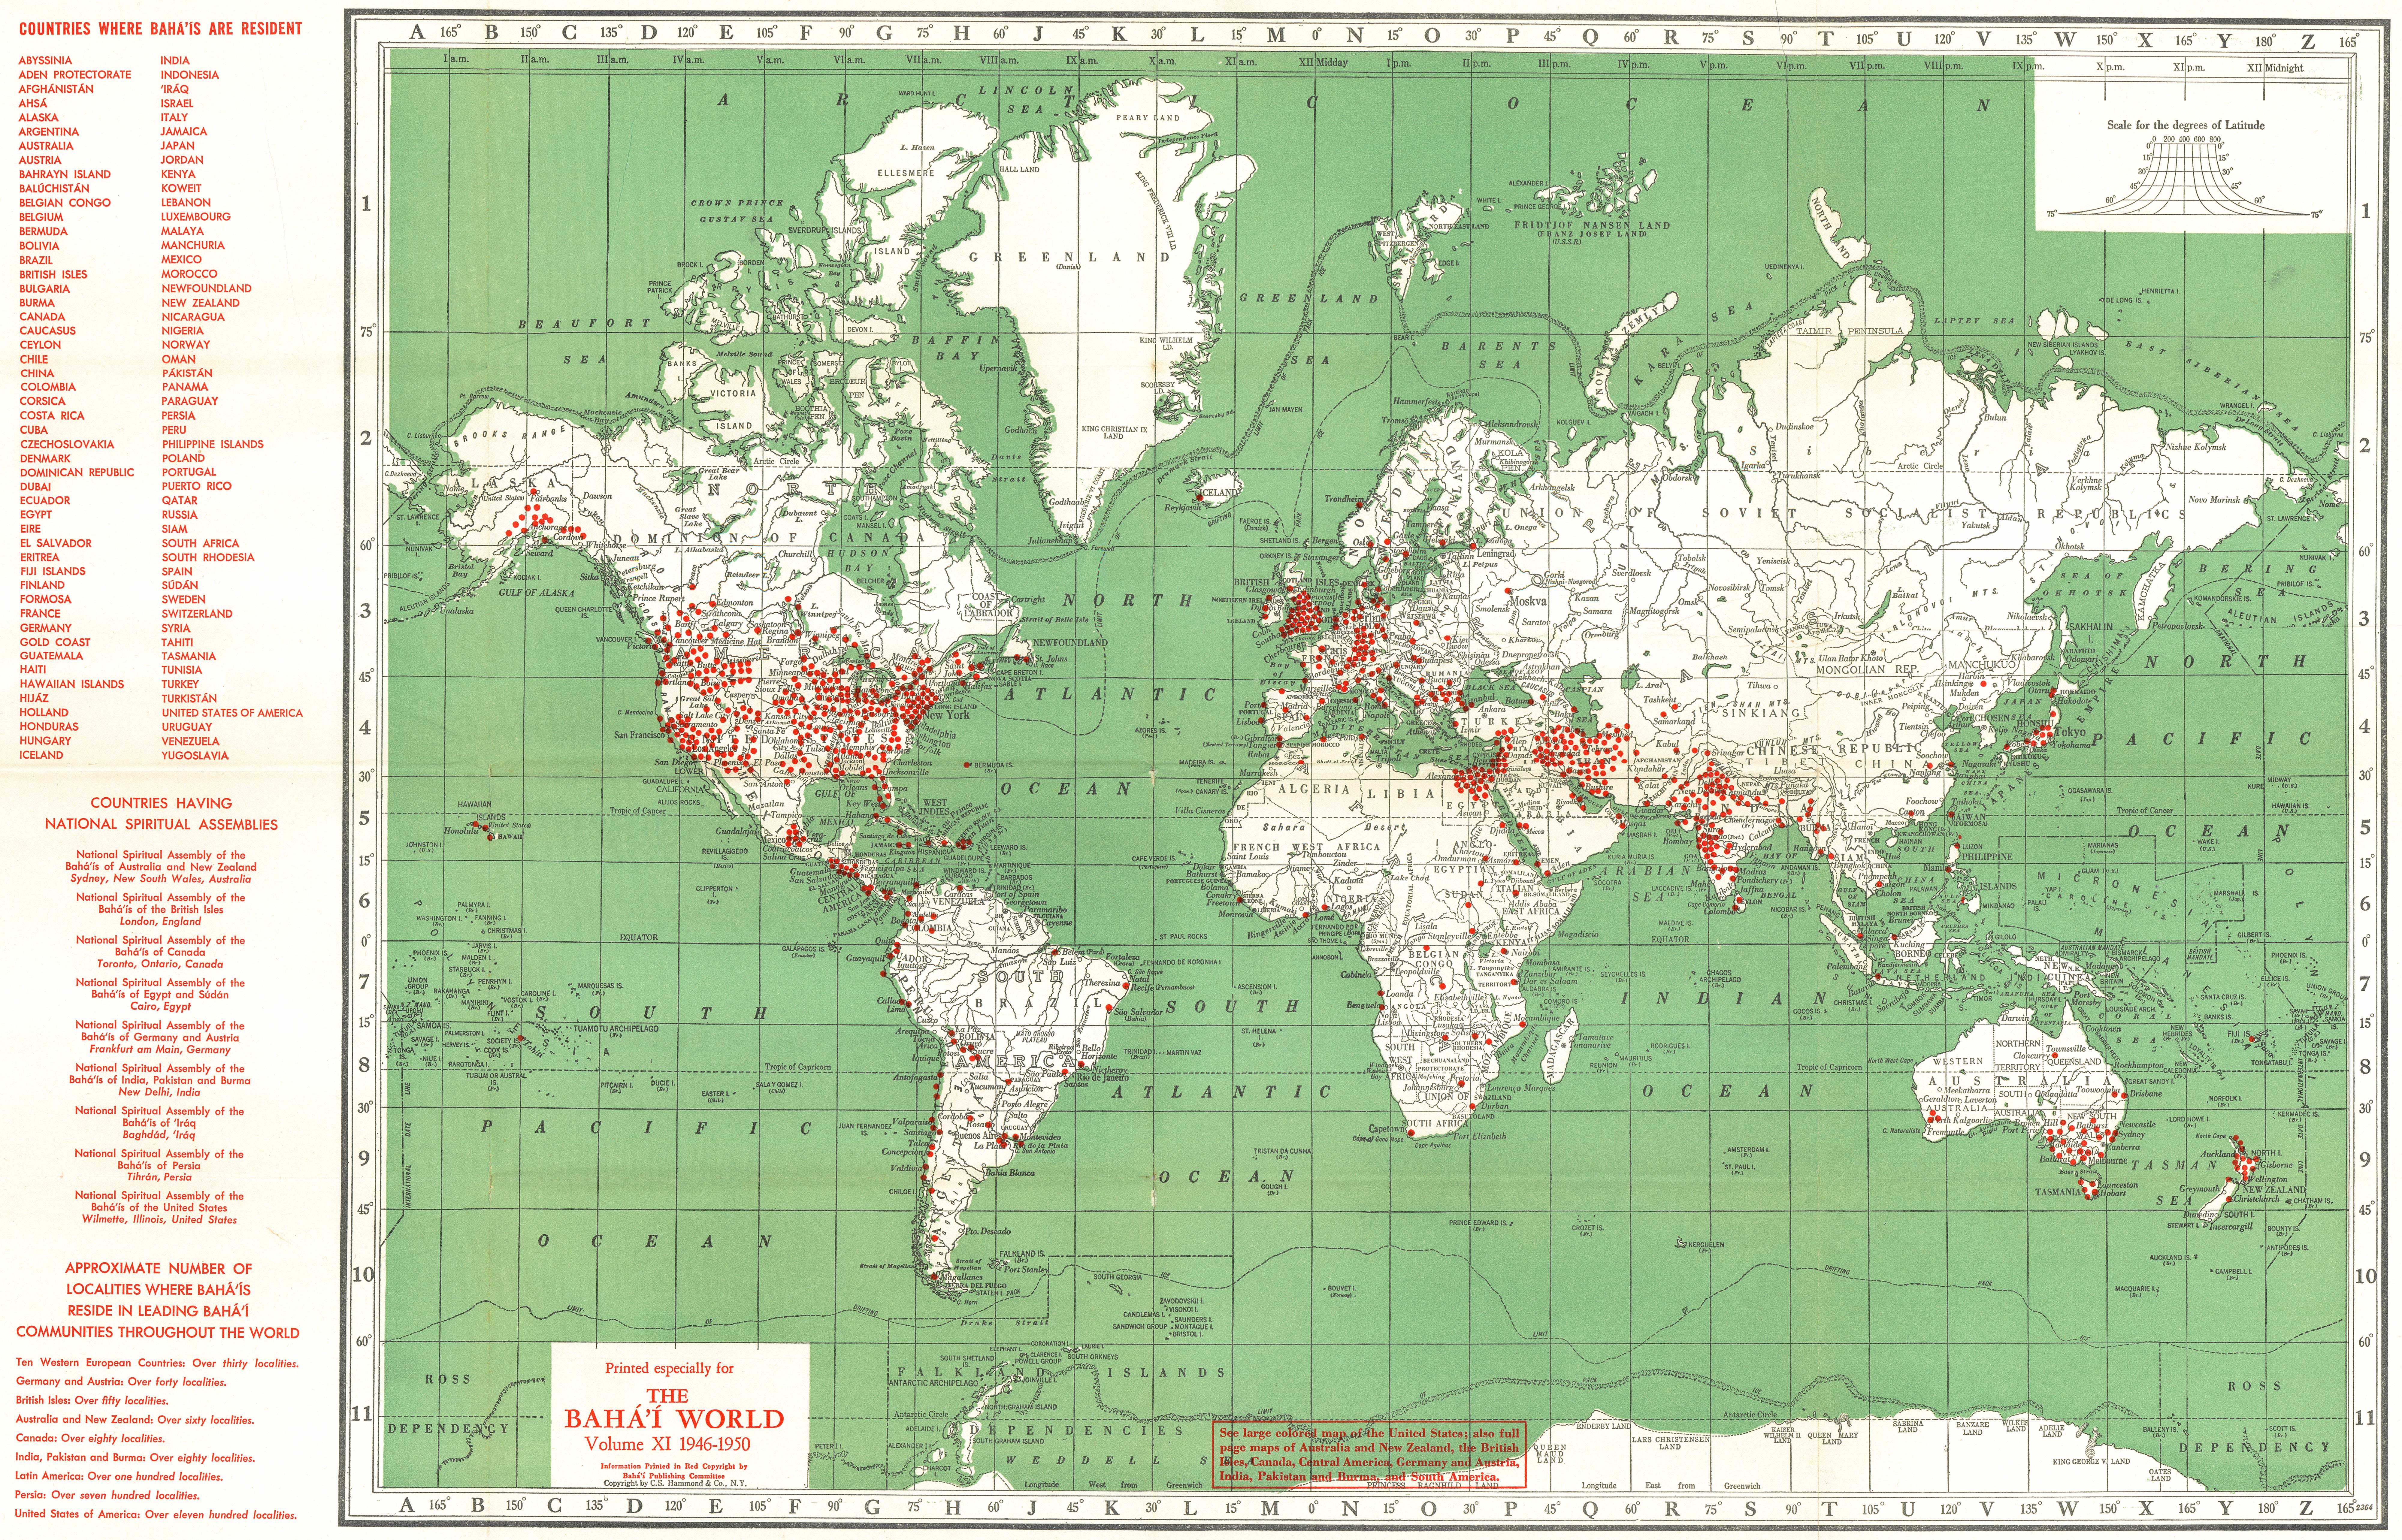 Localities where Bah 39 s live world 1946